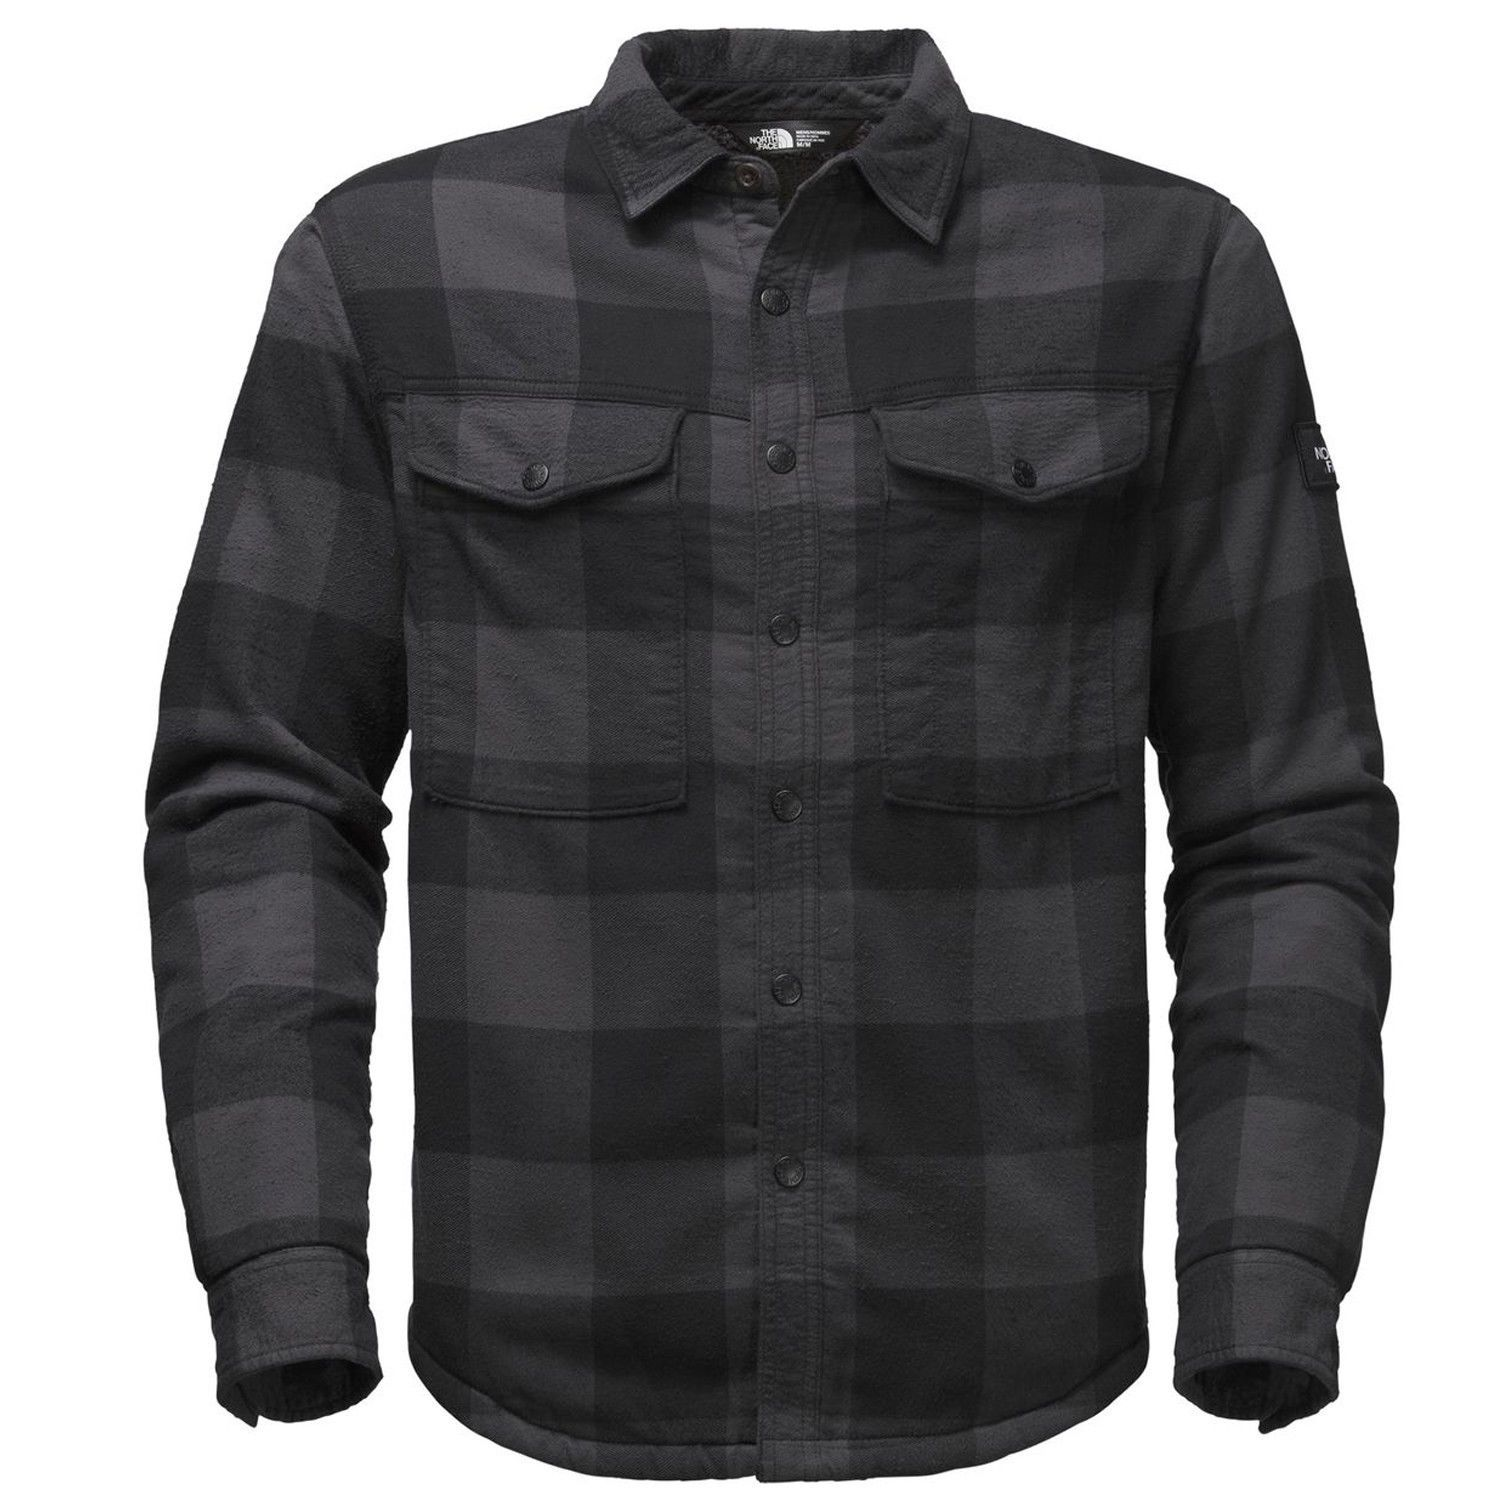 Other Winter Sport Clothing 16060: The North Face Mens 2018 Hike-In Sherpa Shirt Asphalt Grey Plaid -> BUY IT NOW ONLY: $98.99 on eBay!